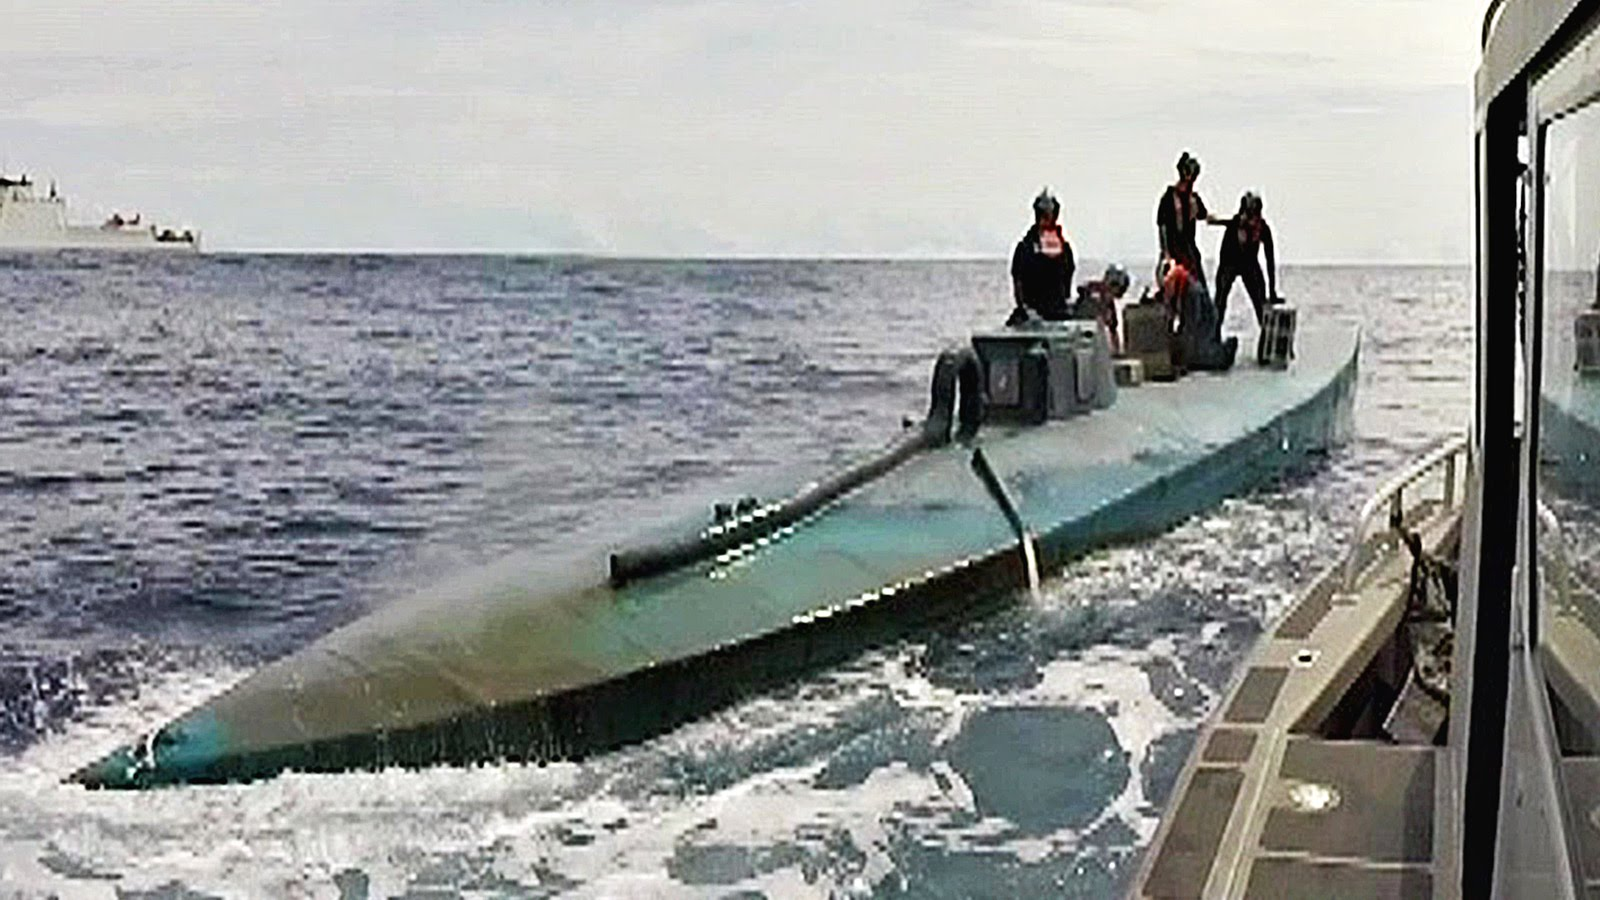 Coast Guard Intercepting Submarine Carrying $181 Million In Drugs